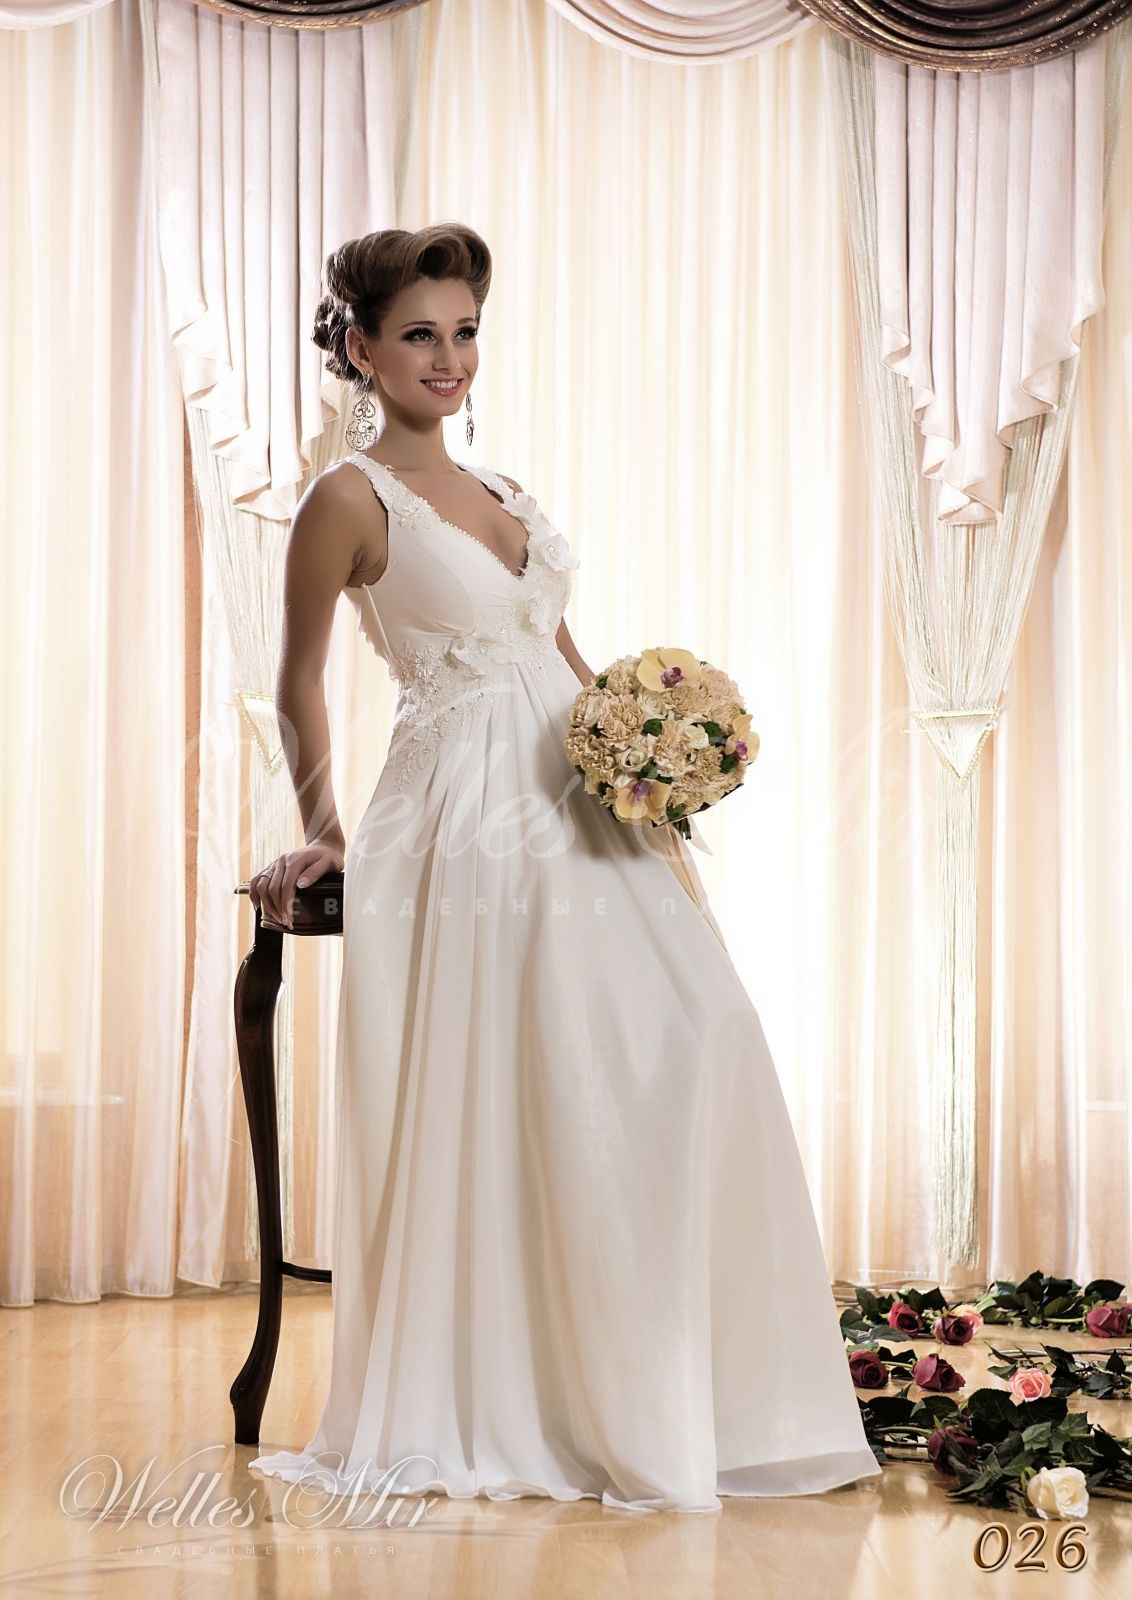 Wedding dresses 026